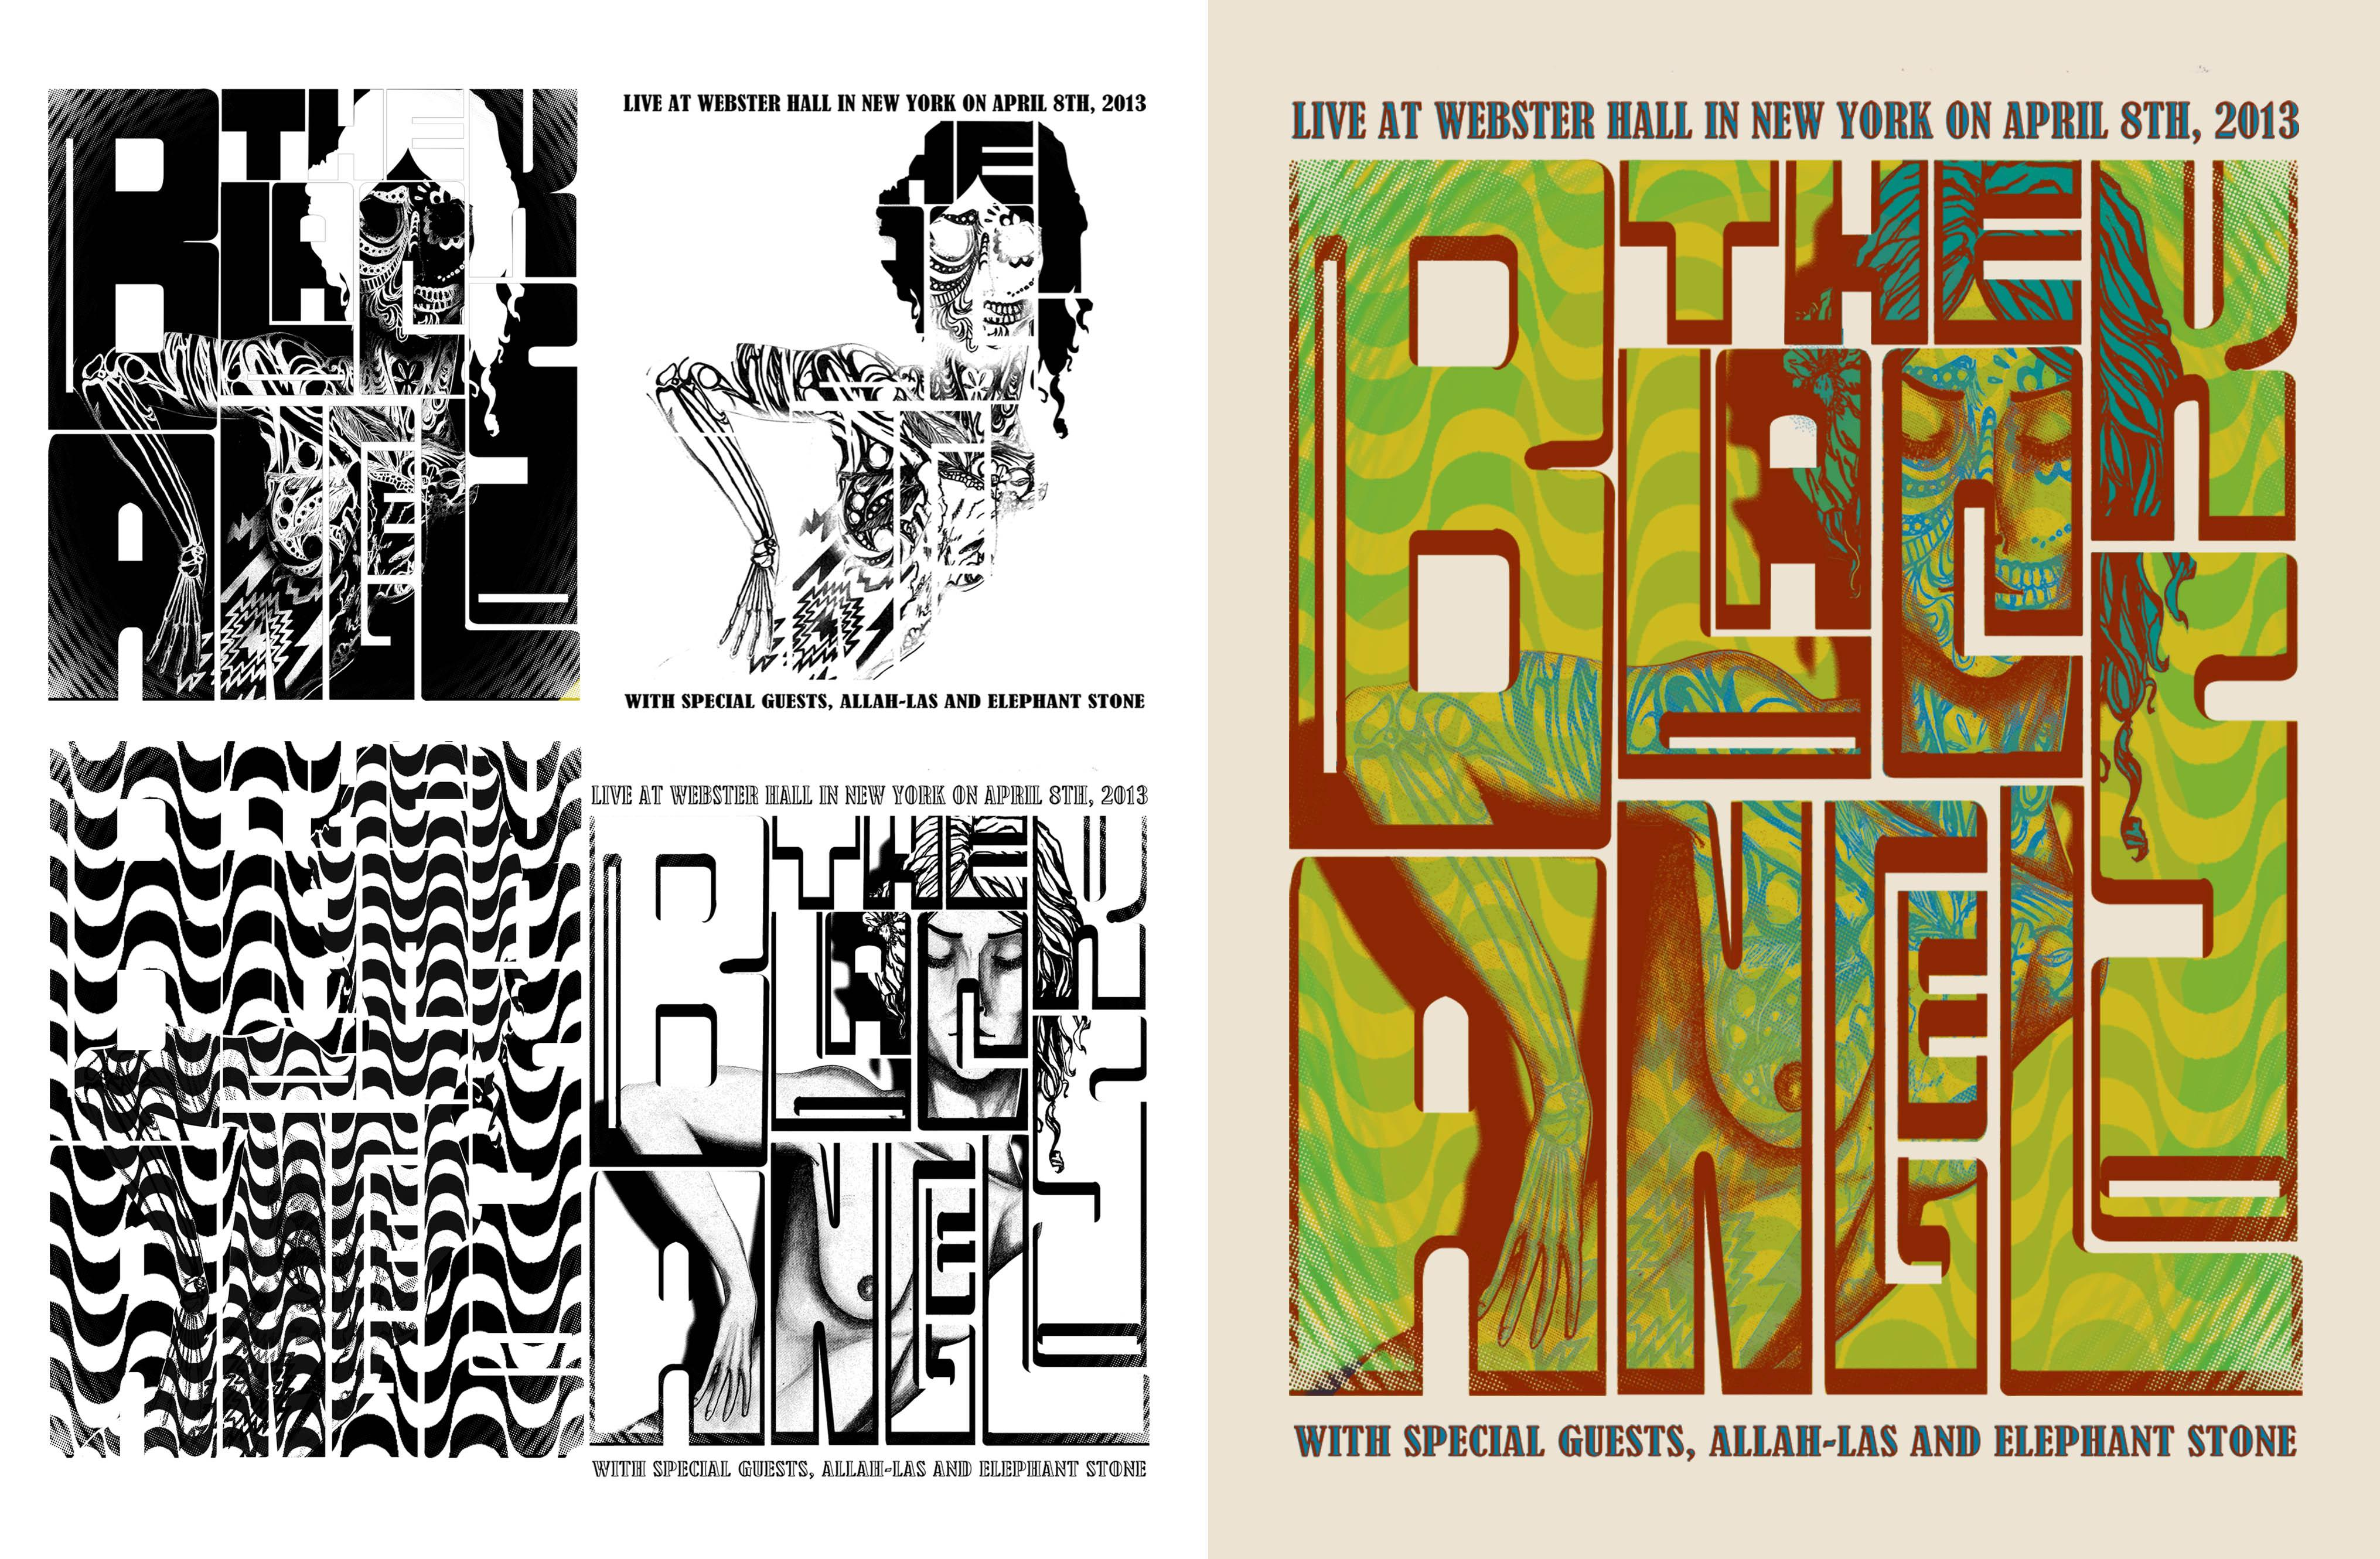 The Black Angels NYC Webster Hall Poster - image 2 - student project